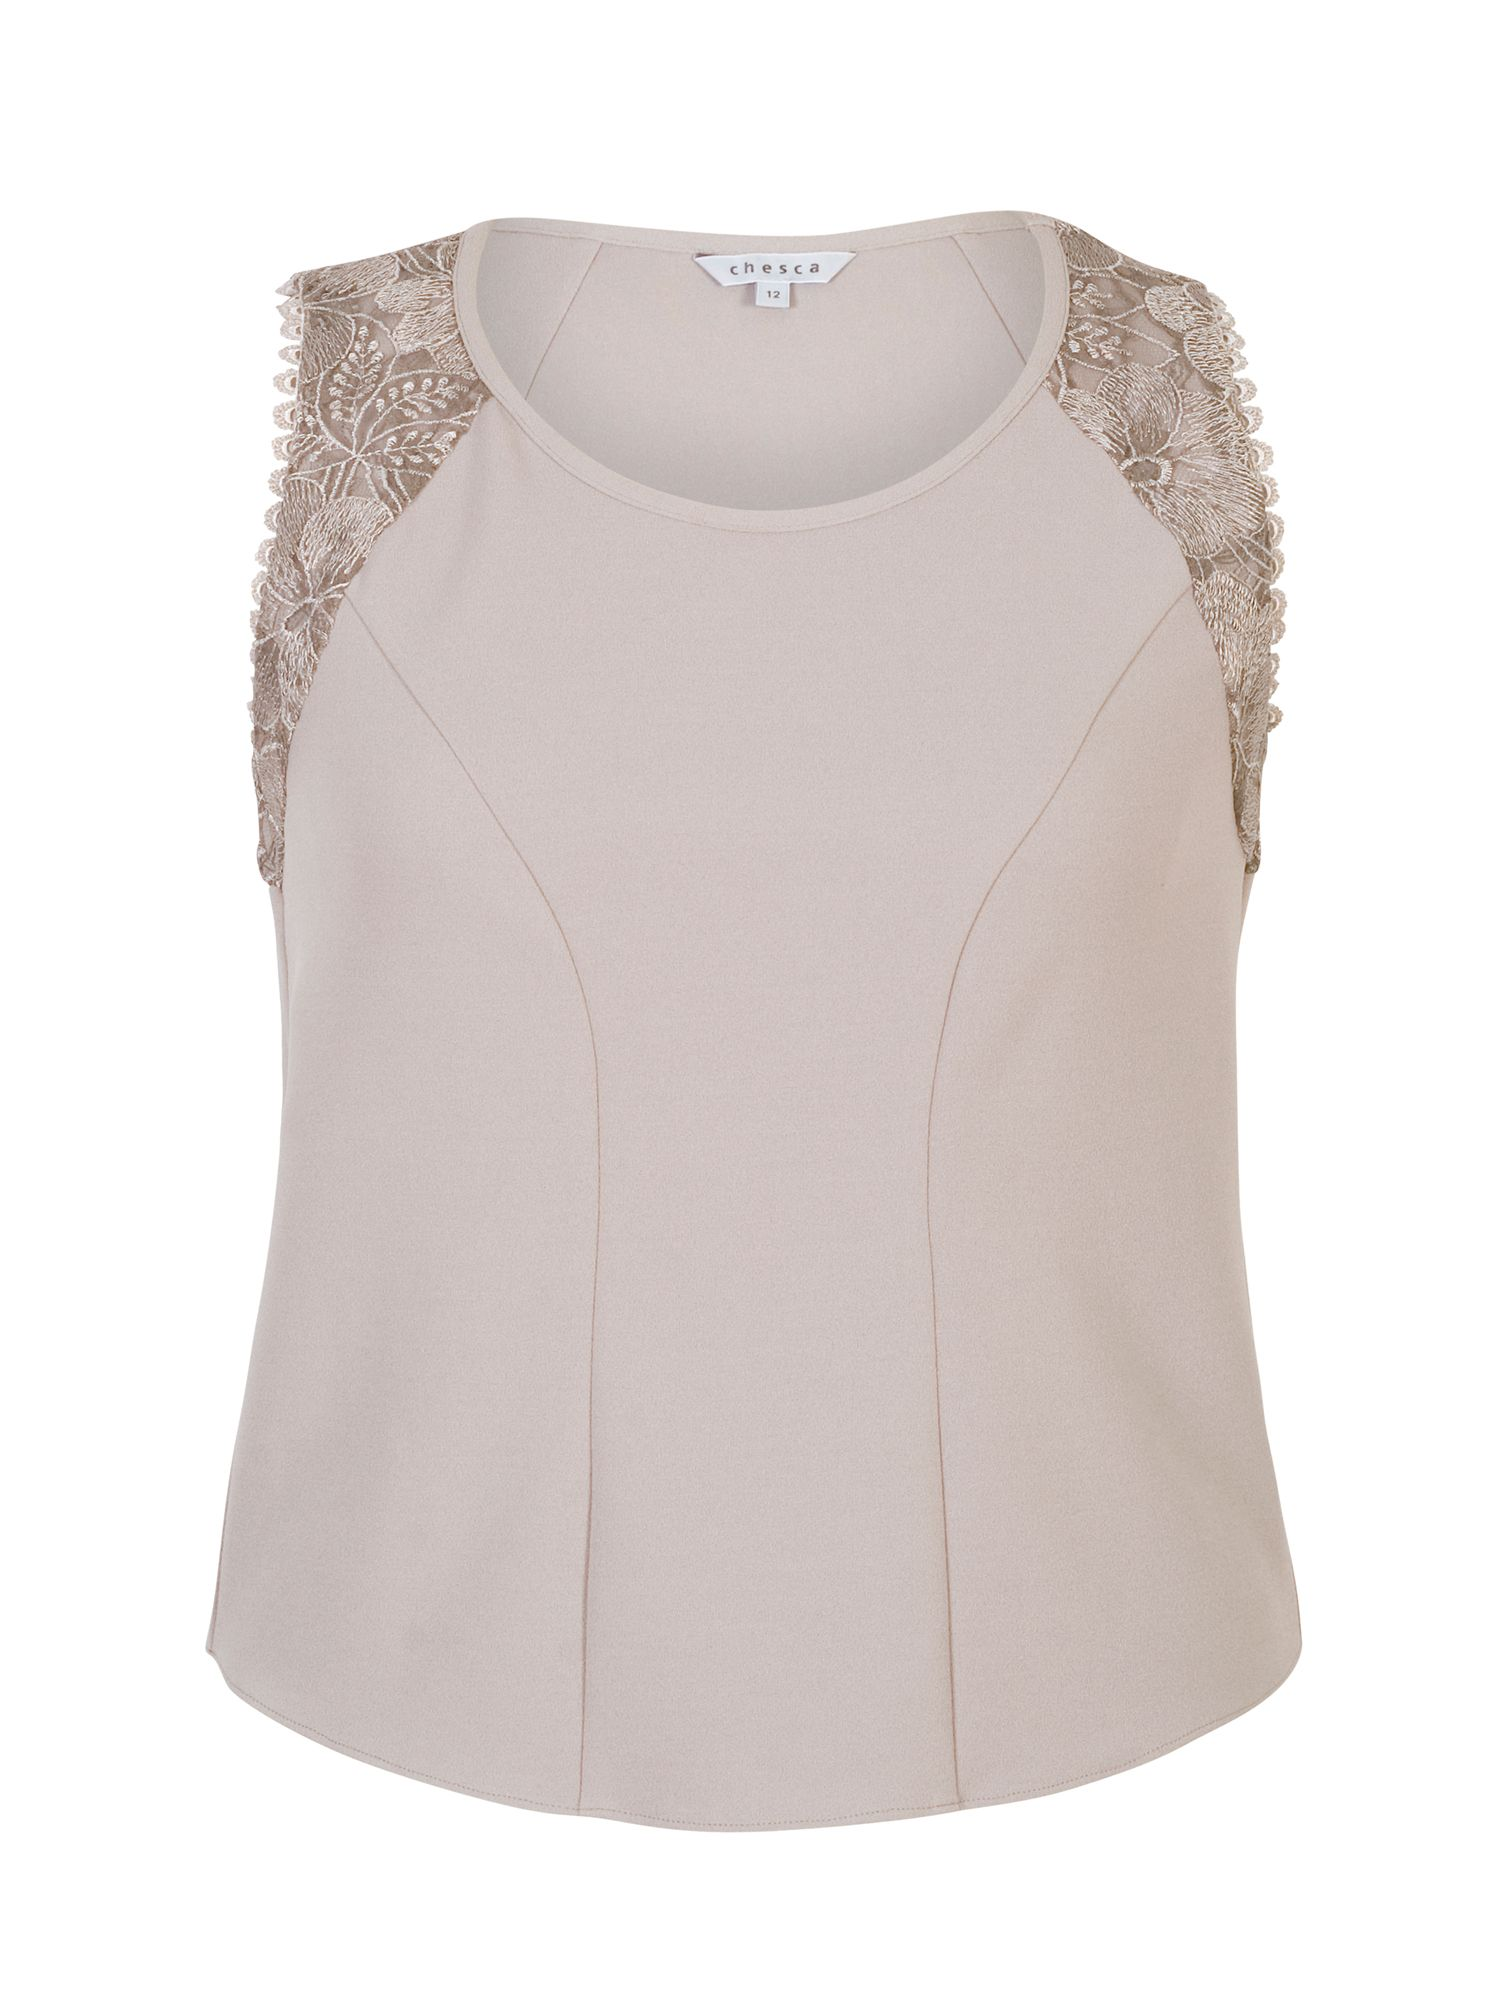 Chesca Crepe Jersey Camisole with Lace Trim, Mink